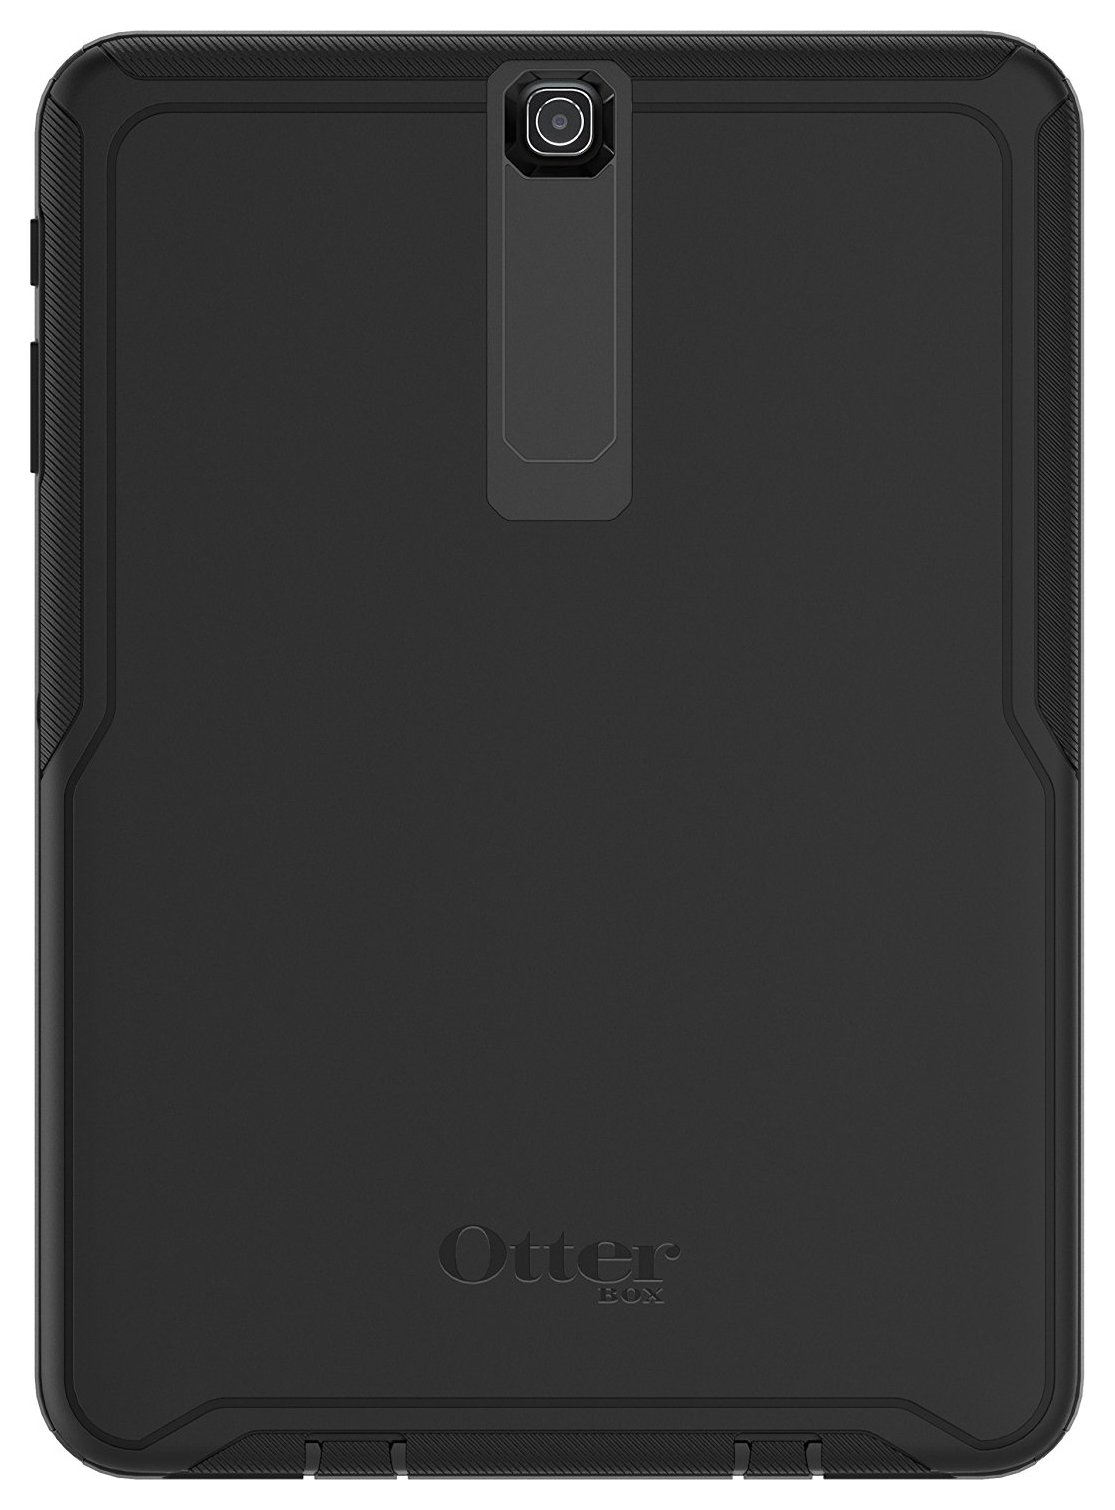 new arrival 723fb 70322 Otterbox Defender Samsung Galaxy Tab S2 9.7 Inch Case